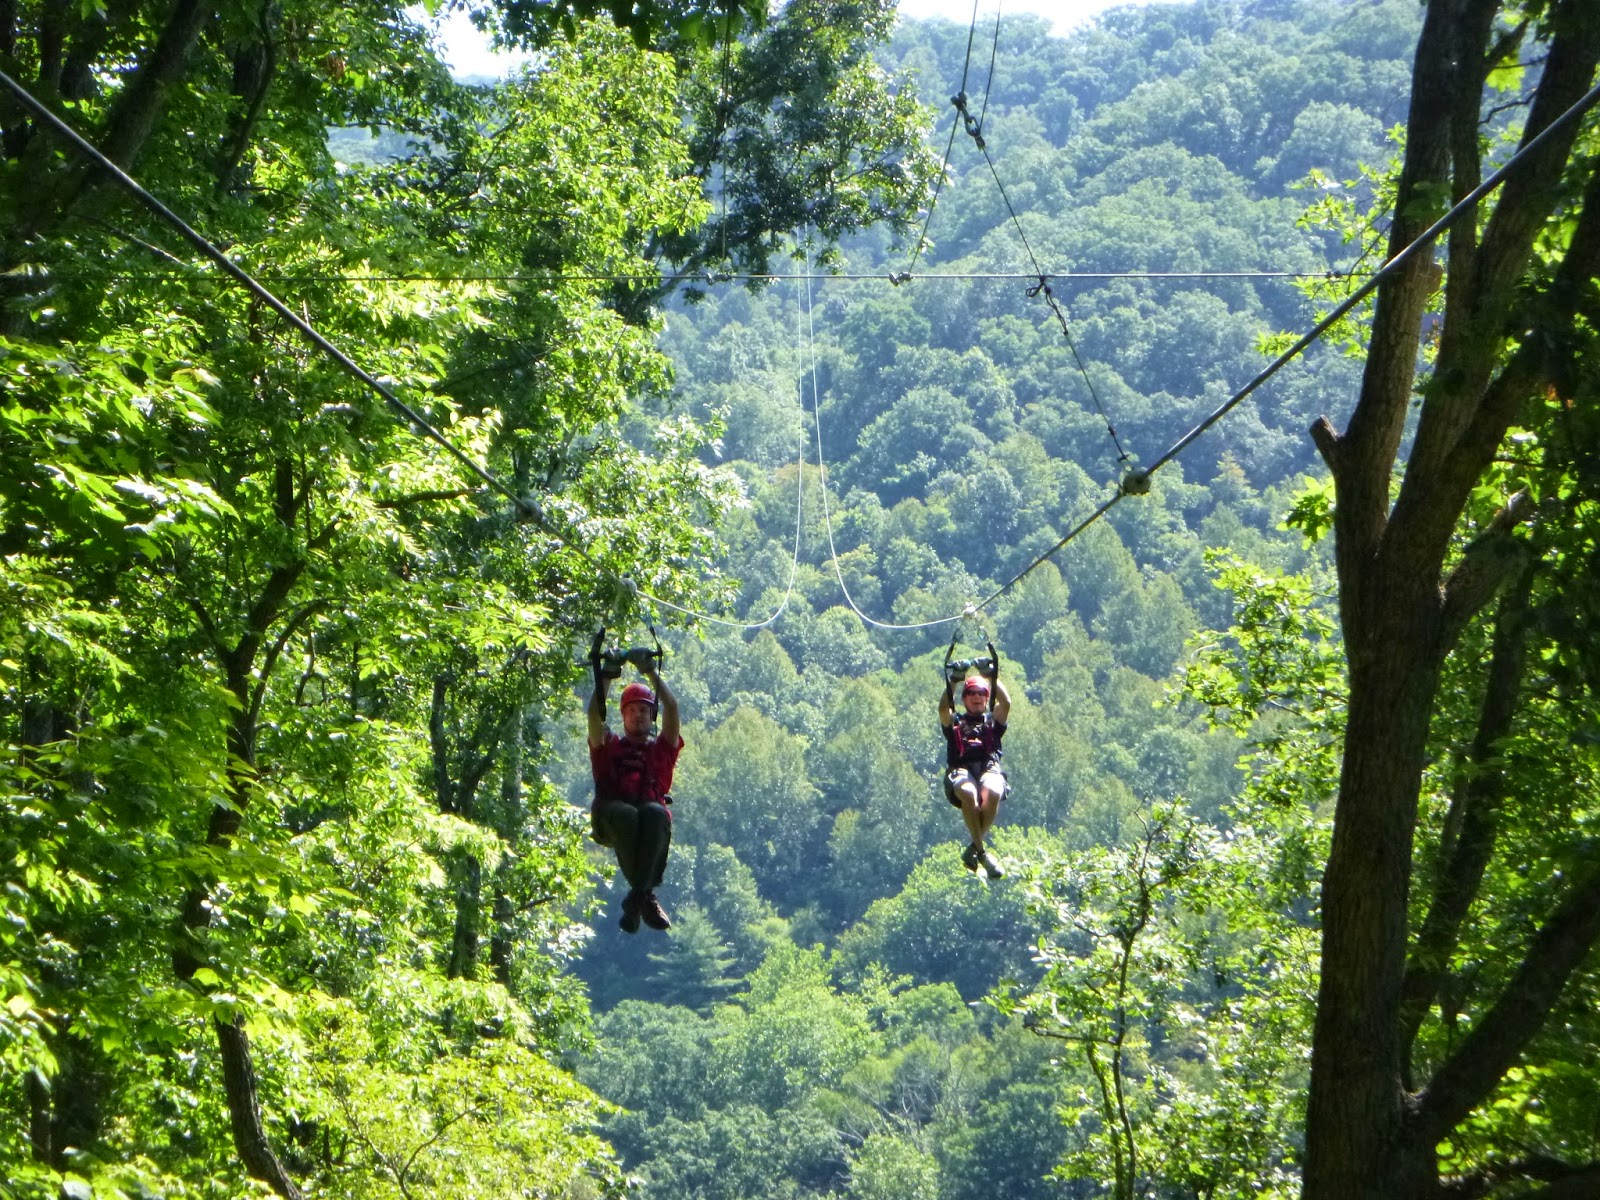 Ziplining with my brother